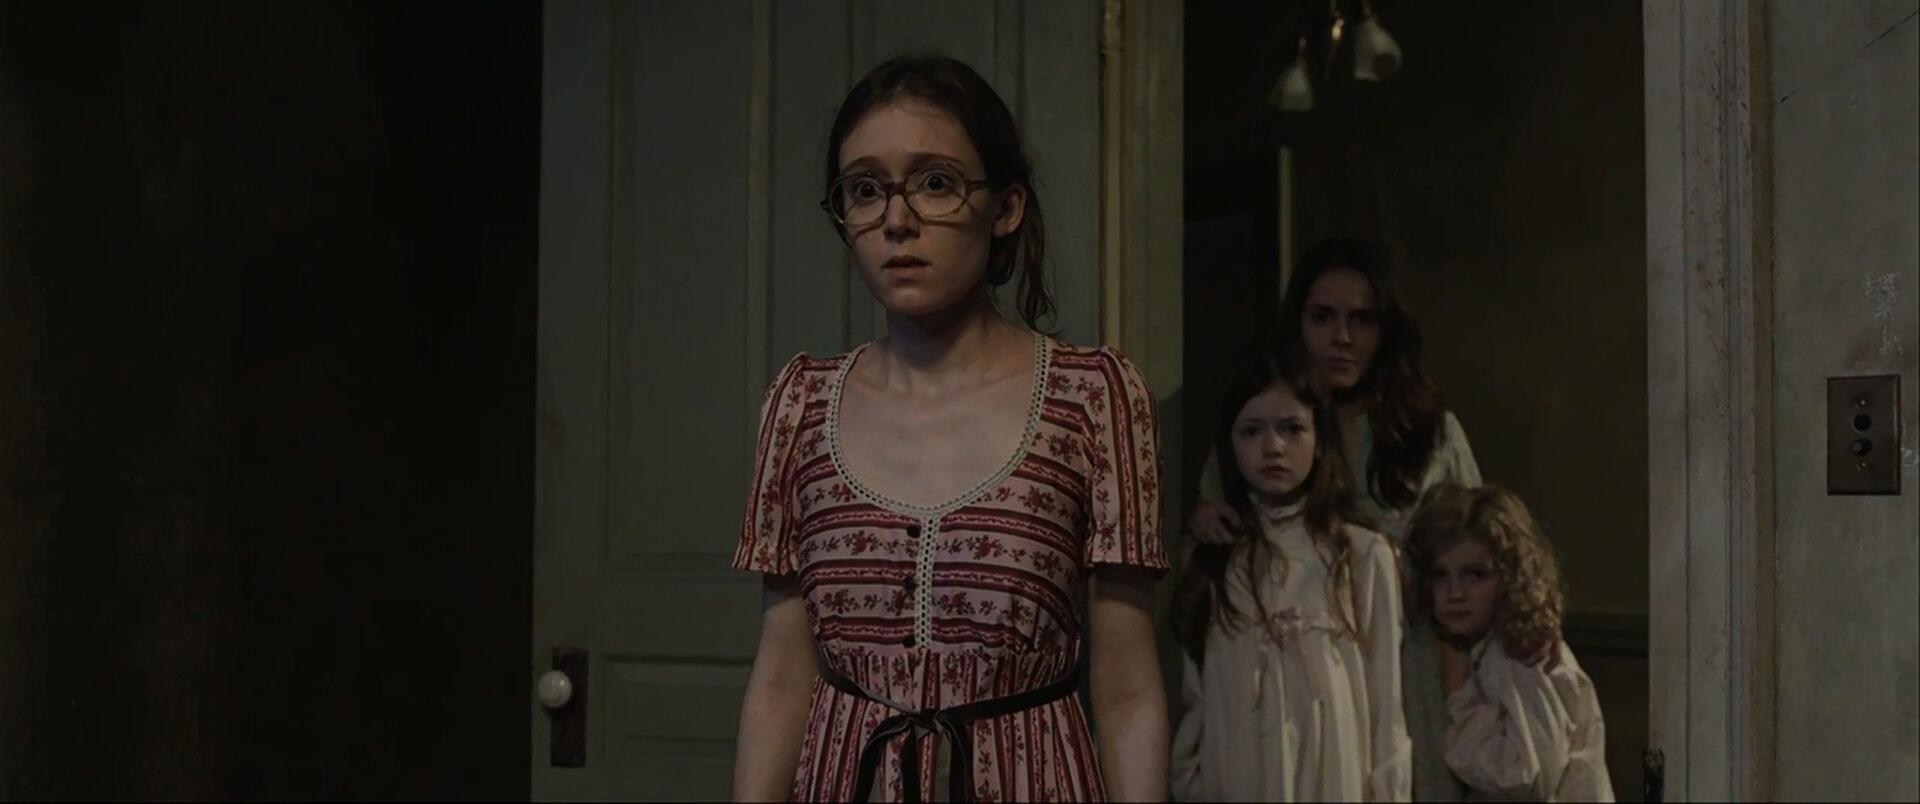 Octoblur 2016 01 The Conjuring 2013